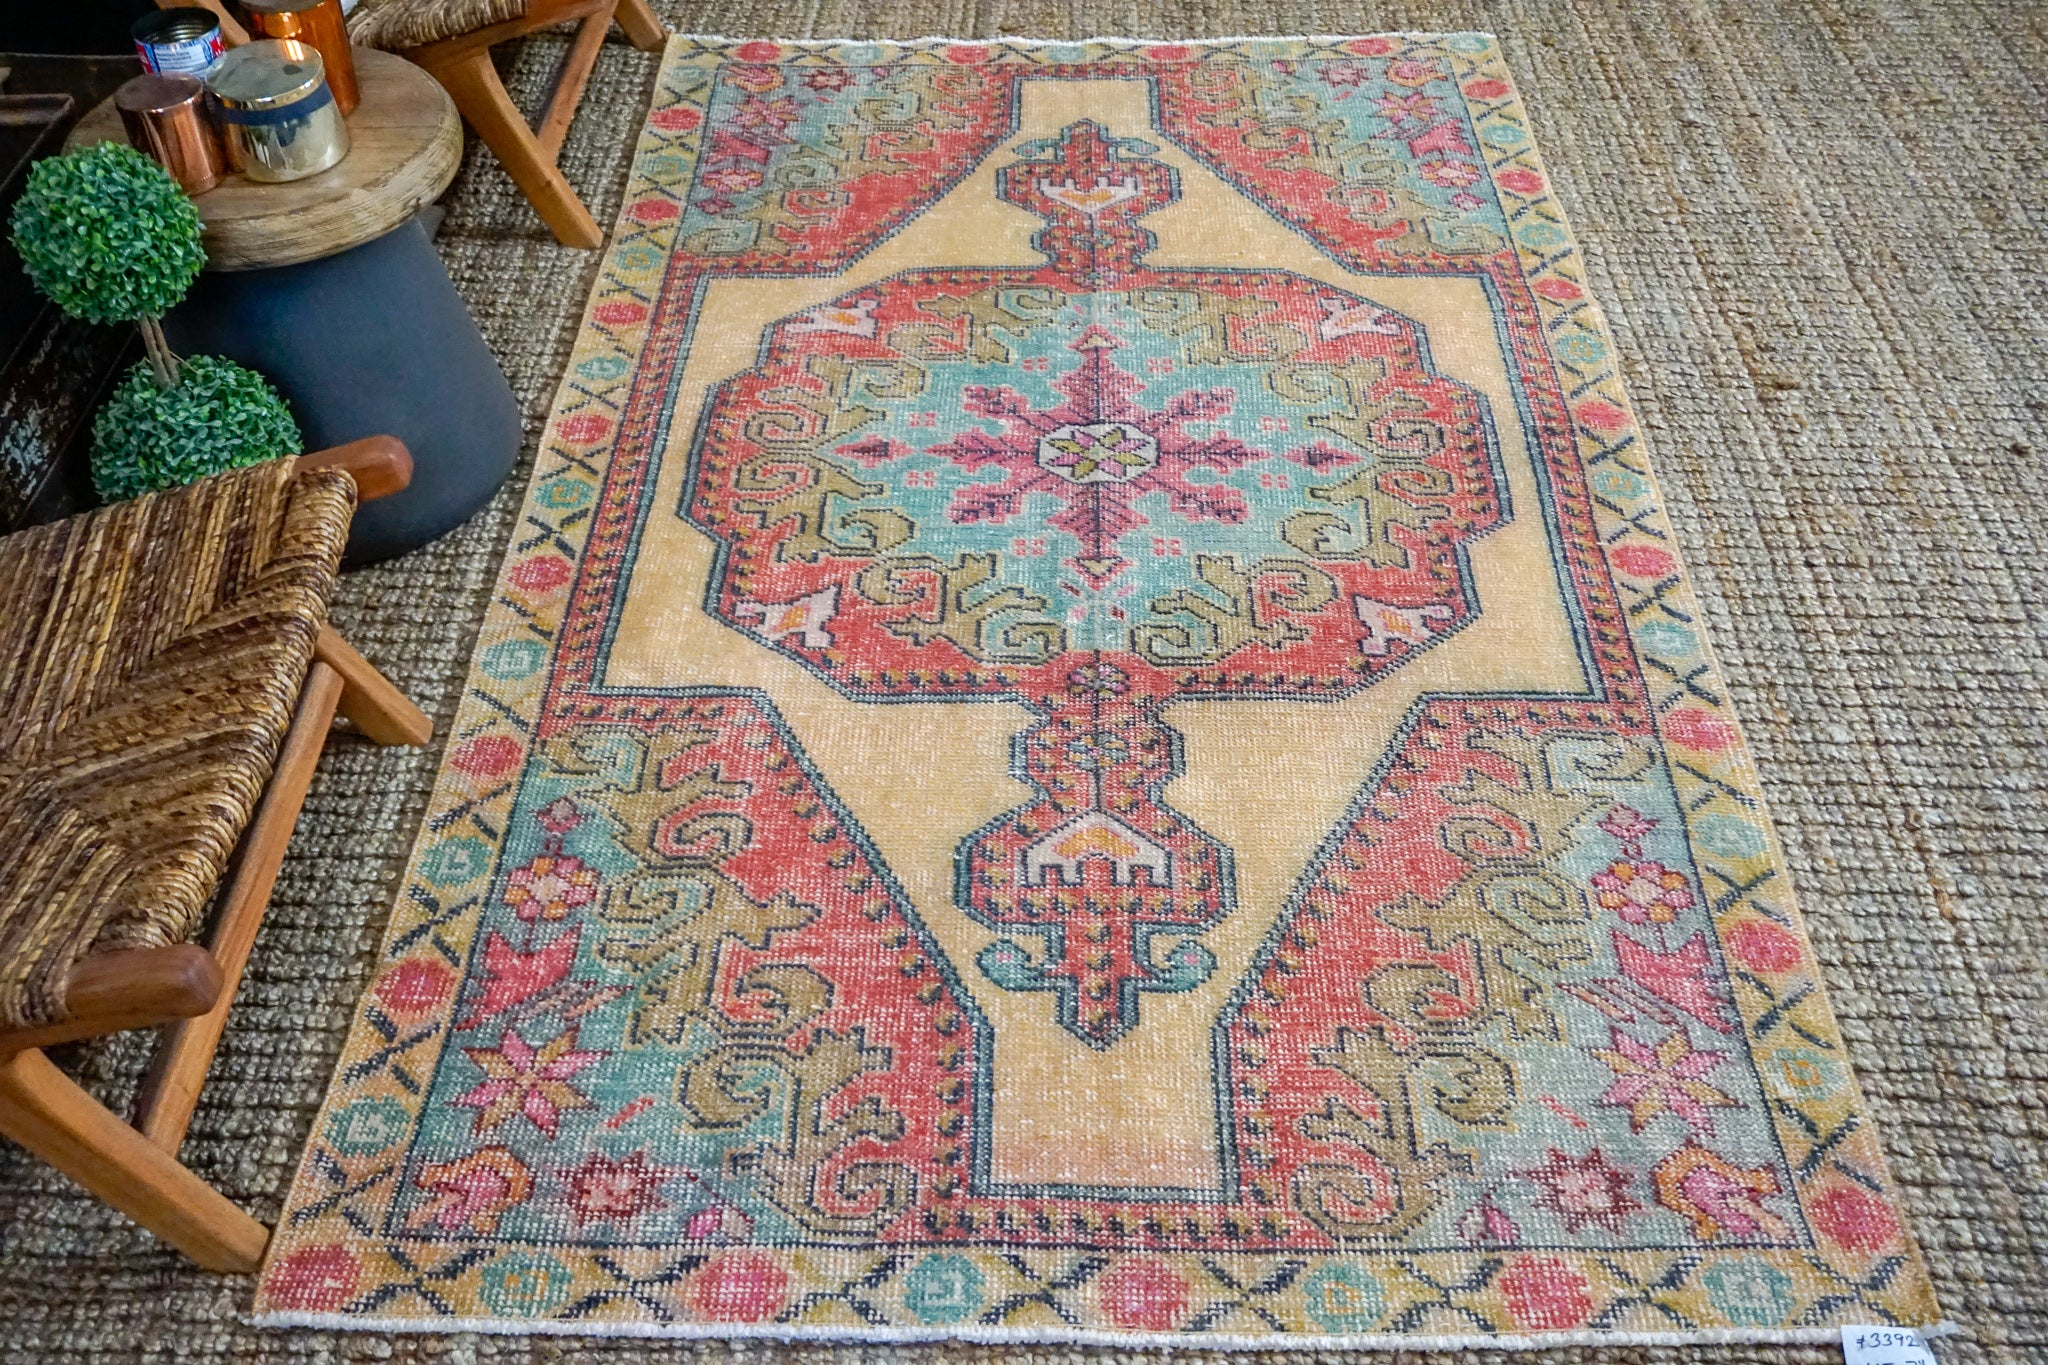 4'5 x 7'6 Vintage Turkish Oushak Carpet Muted Watermelon, Ecru and Turquoise